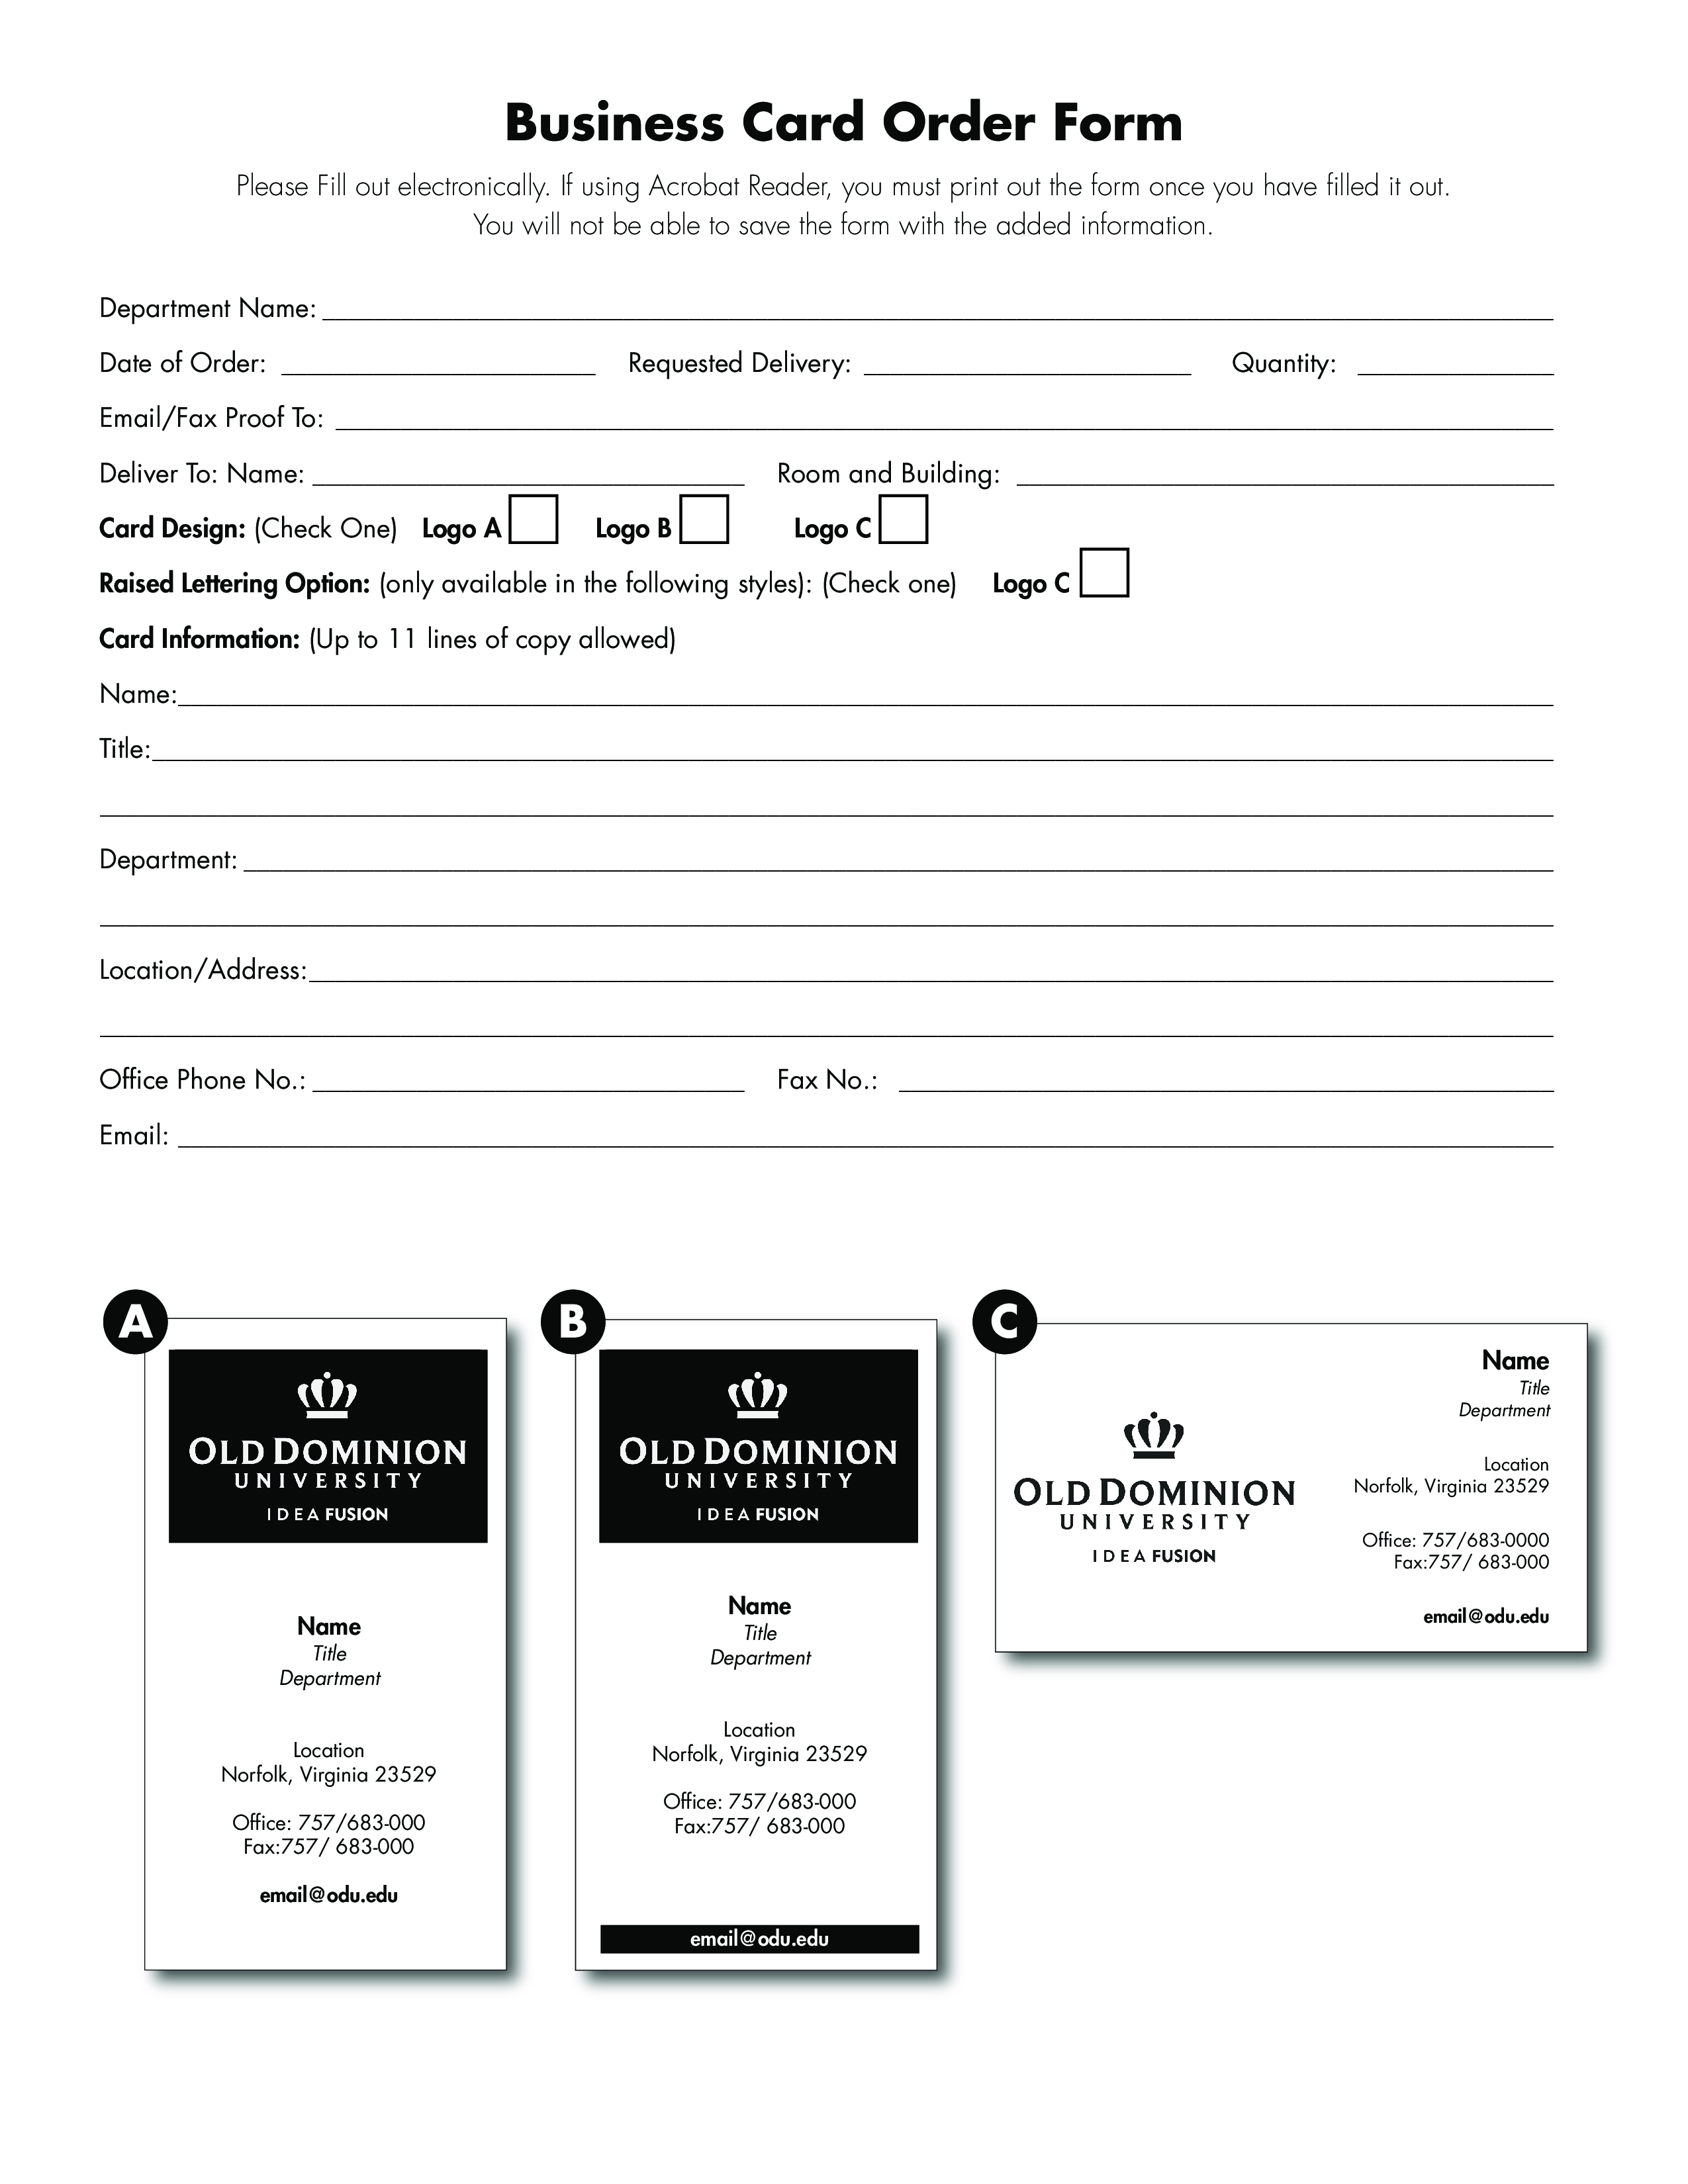 Free Business Order Form | Templates at allbusinesstemplates.com on business card contact, business card delivery, business card fabric, business card menu, business card description, business card map, business card patterns, business card press, business card services, business card information, gift card order form, business card disclaimer, business card books, business card company, business card home, greeting card order form, business card awards, business thank you note cards, business card sa, business card wording,